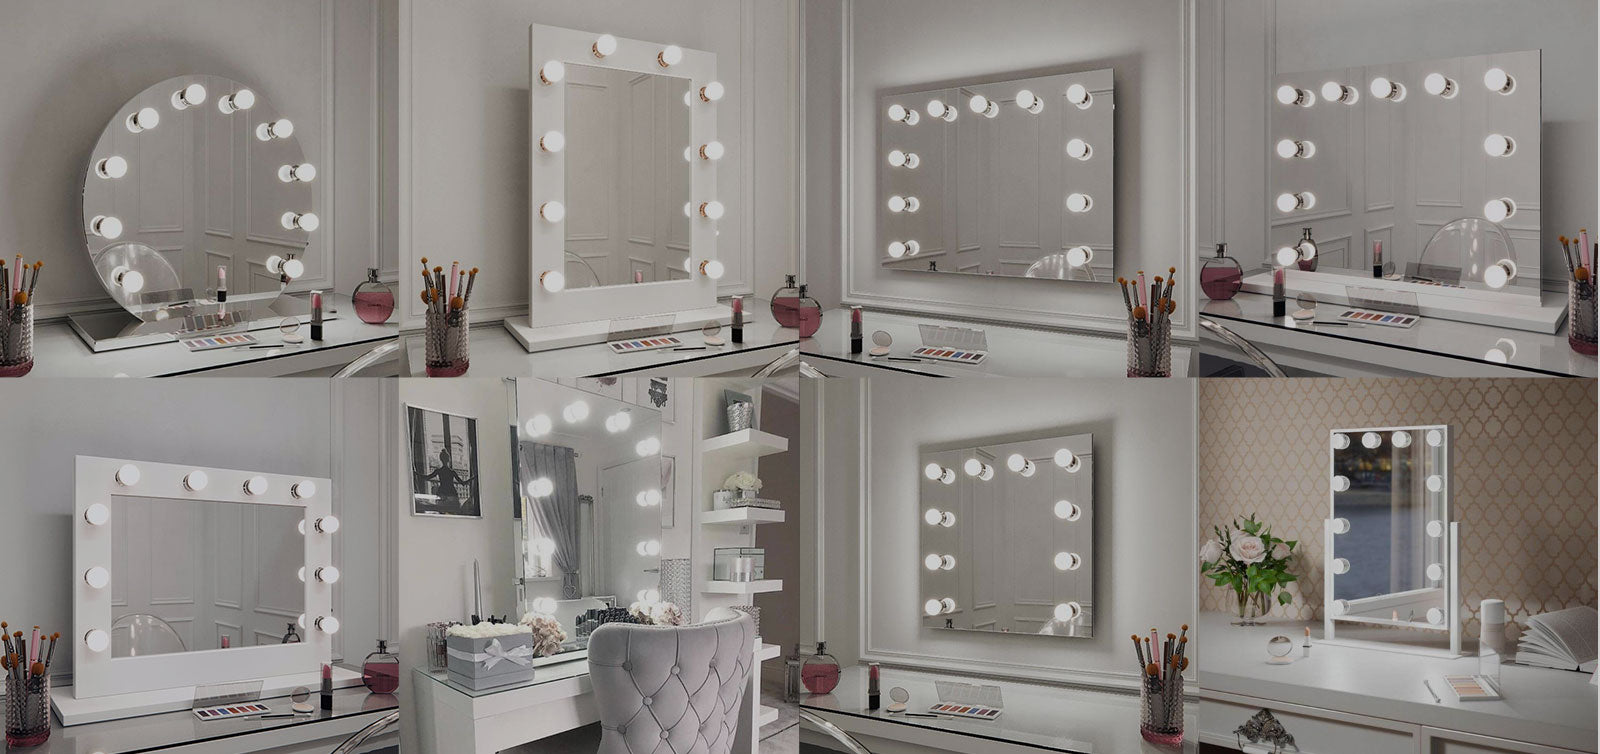 vanity with light bulbs